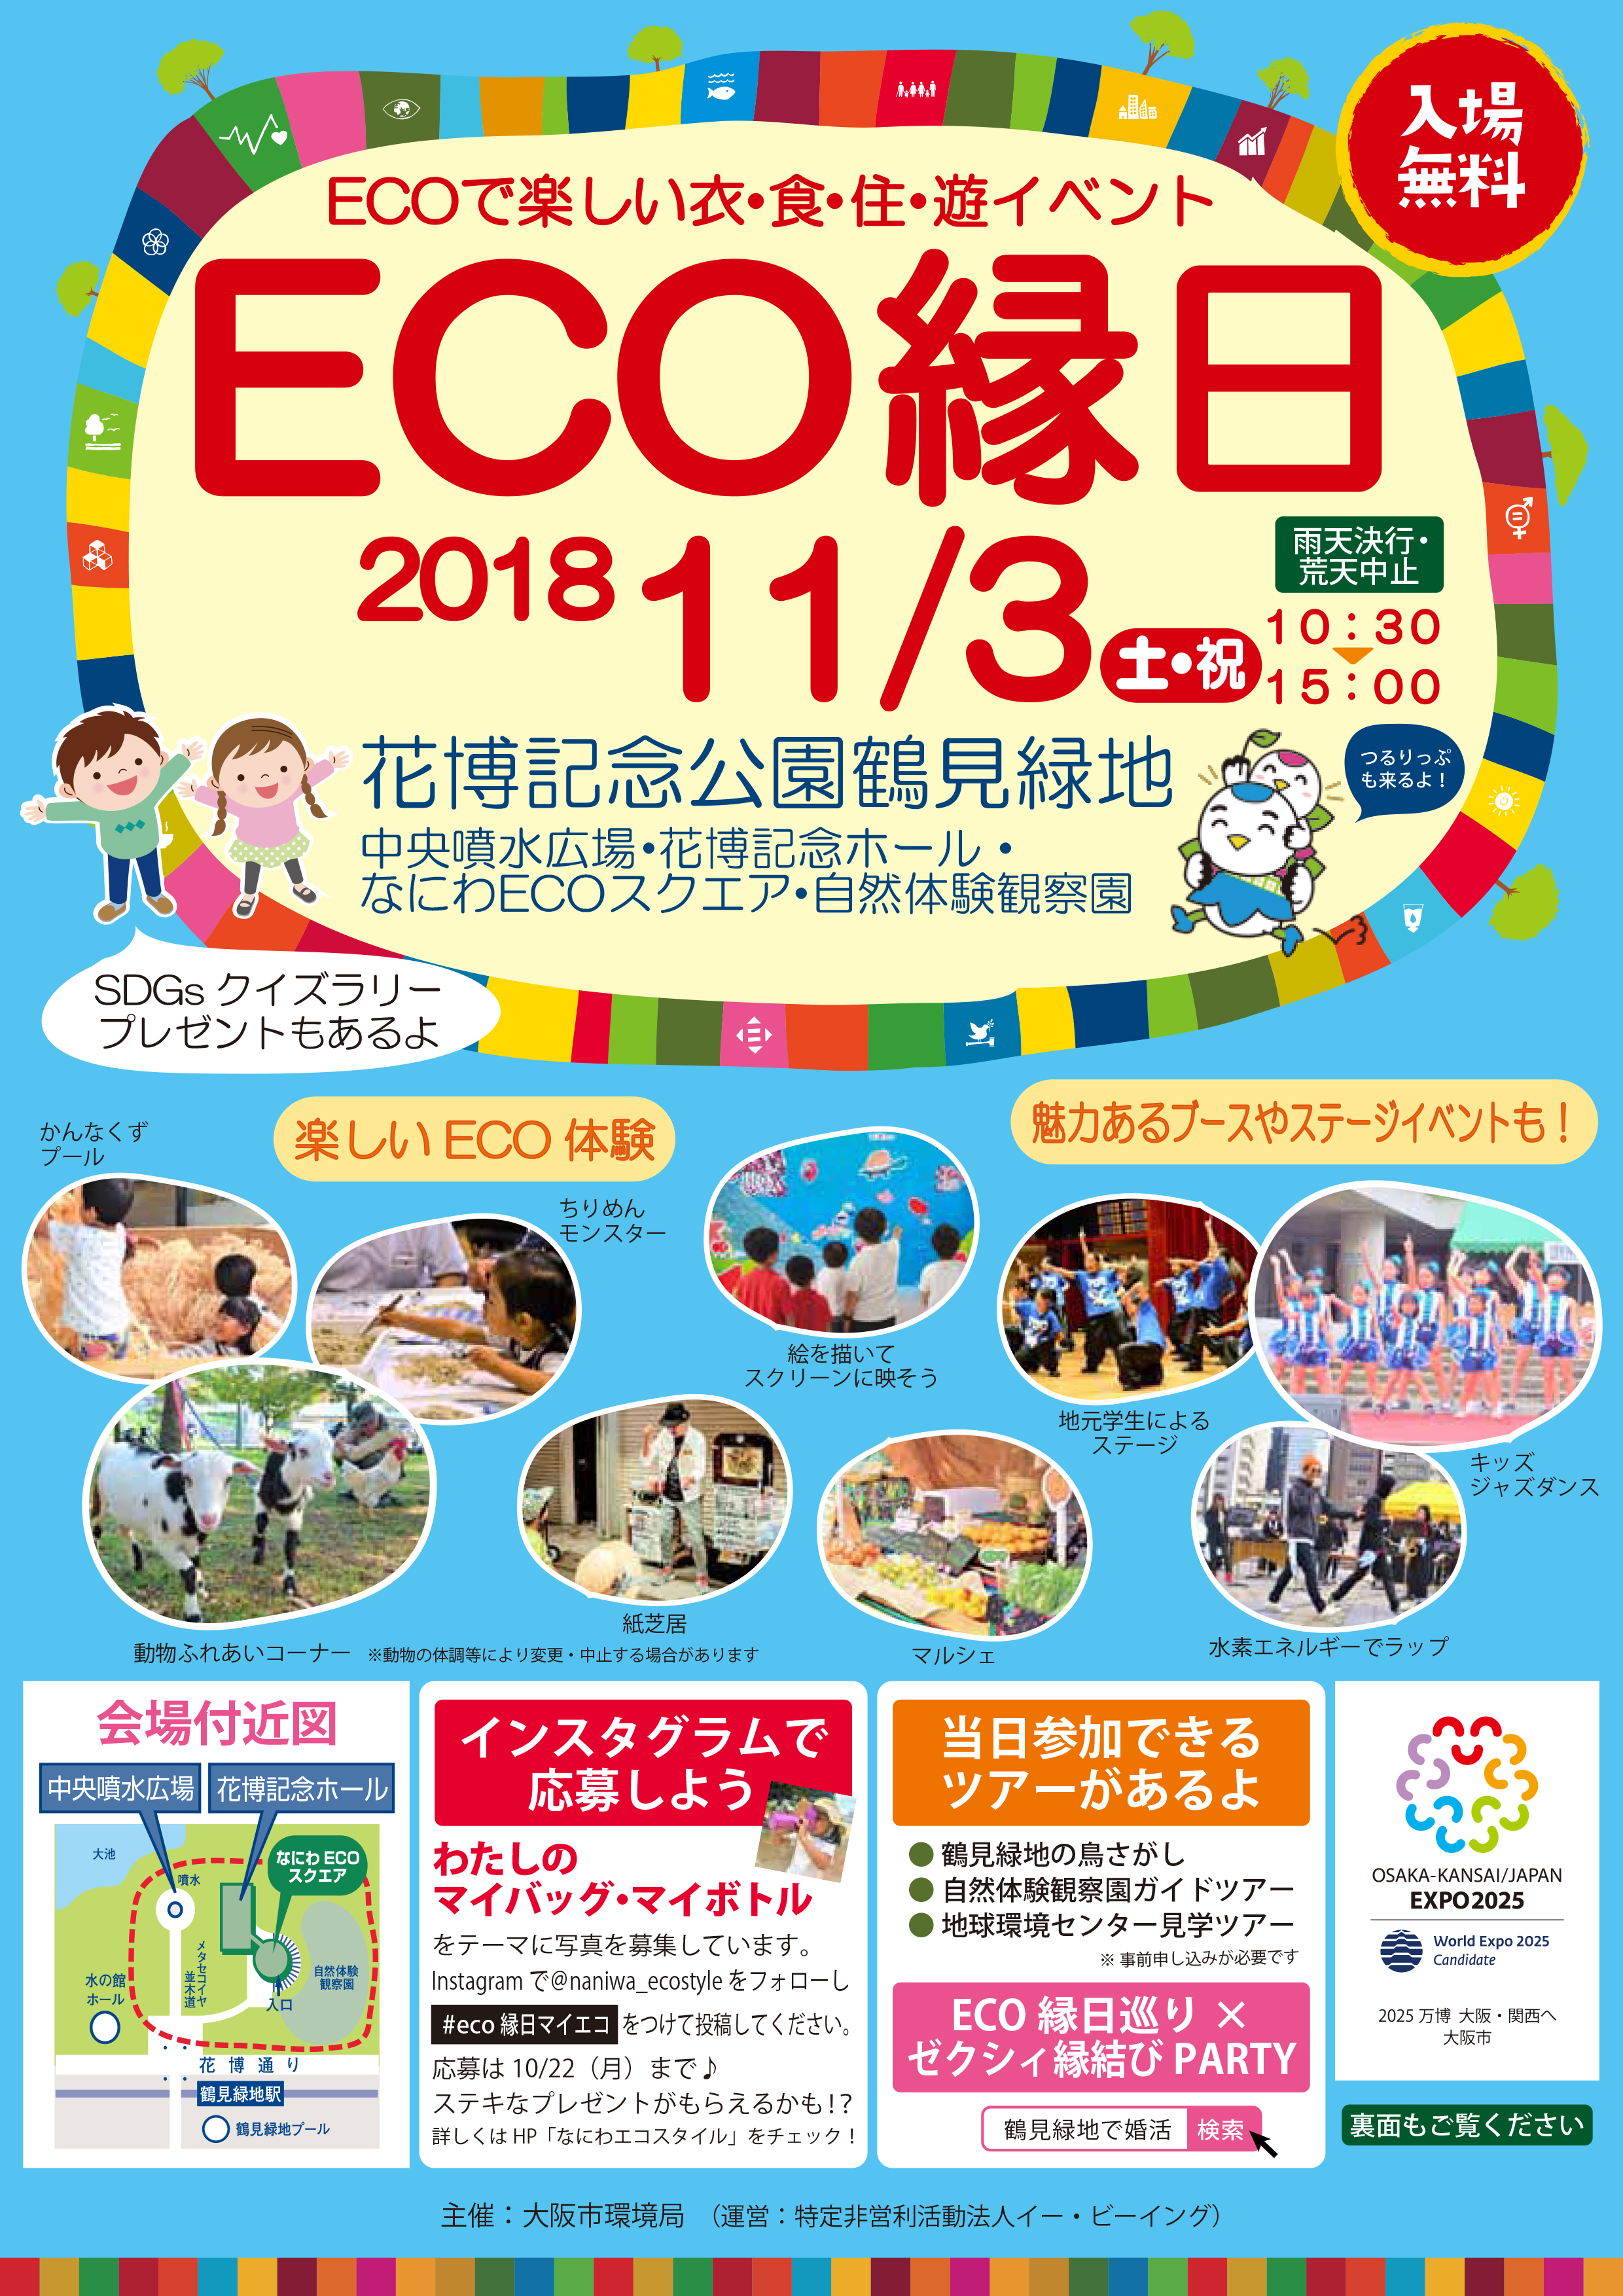 https://www.iehito.co.jp/information/images/eco2018-1.jpg